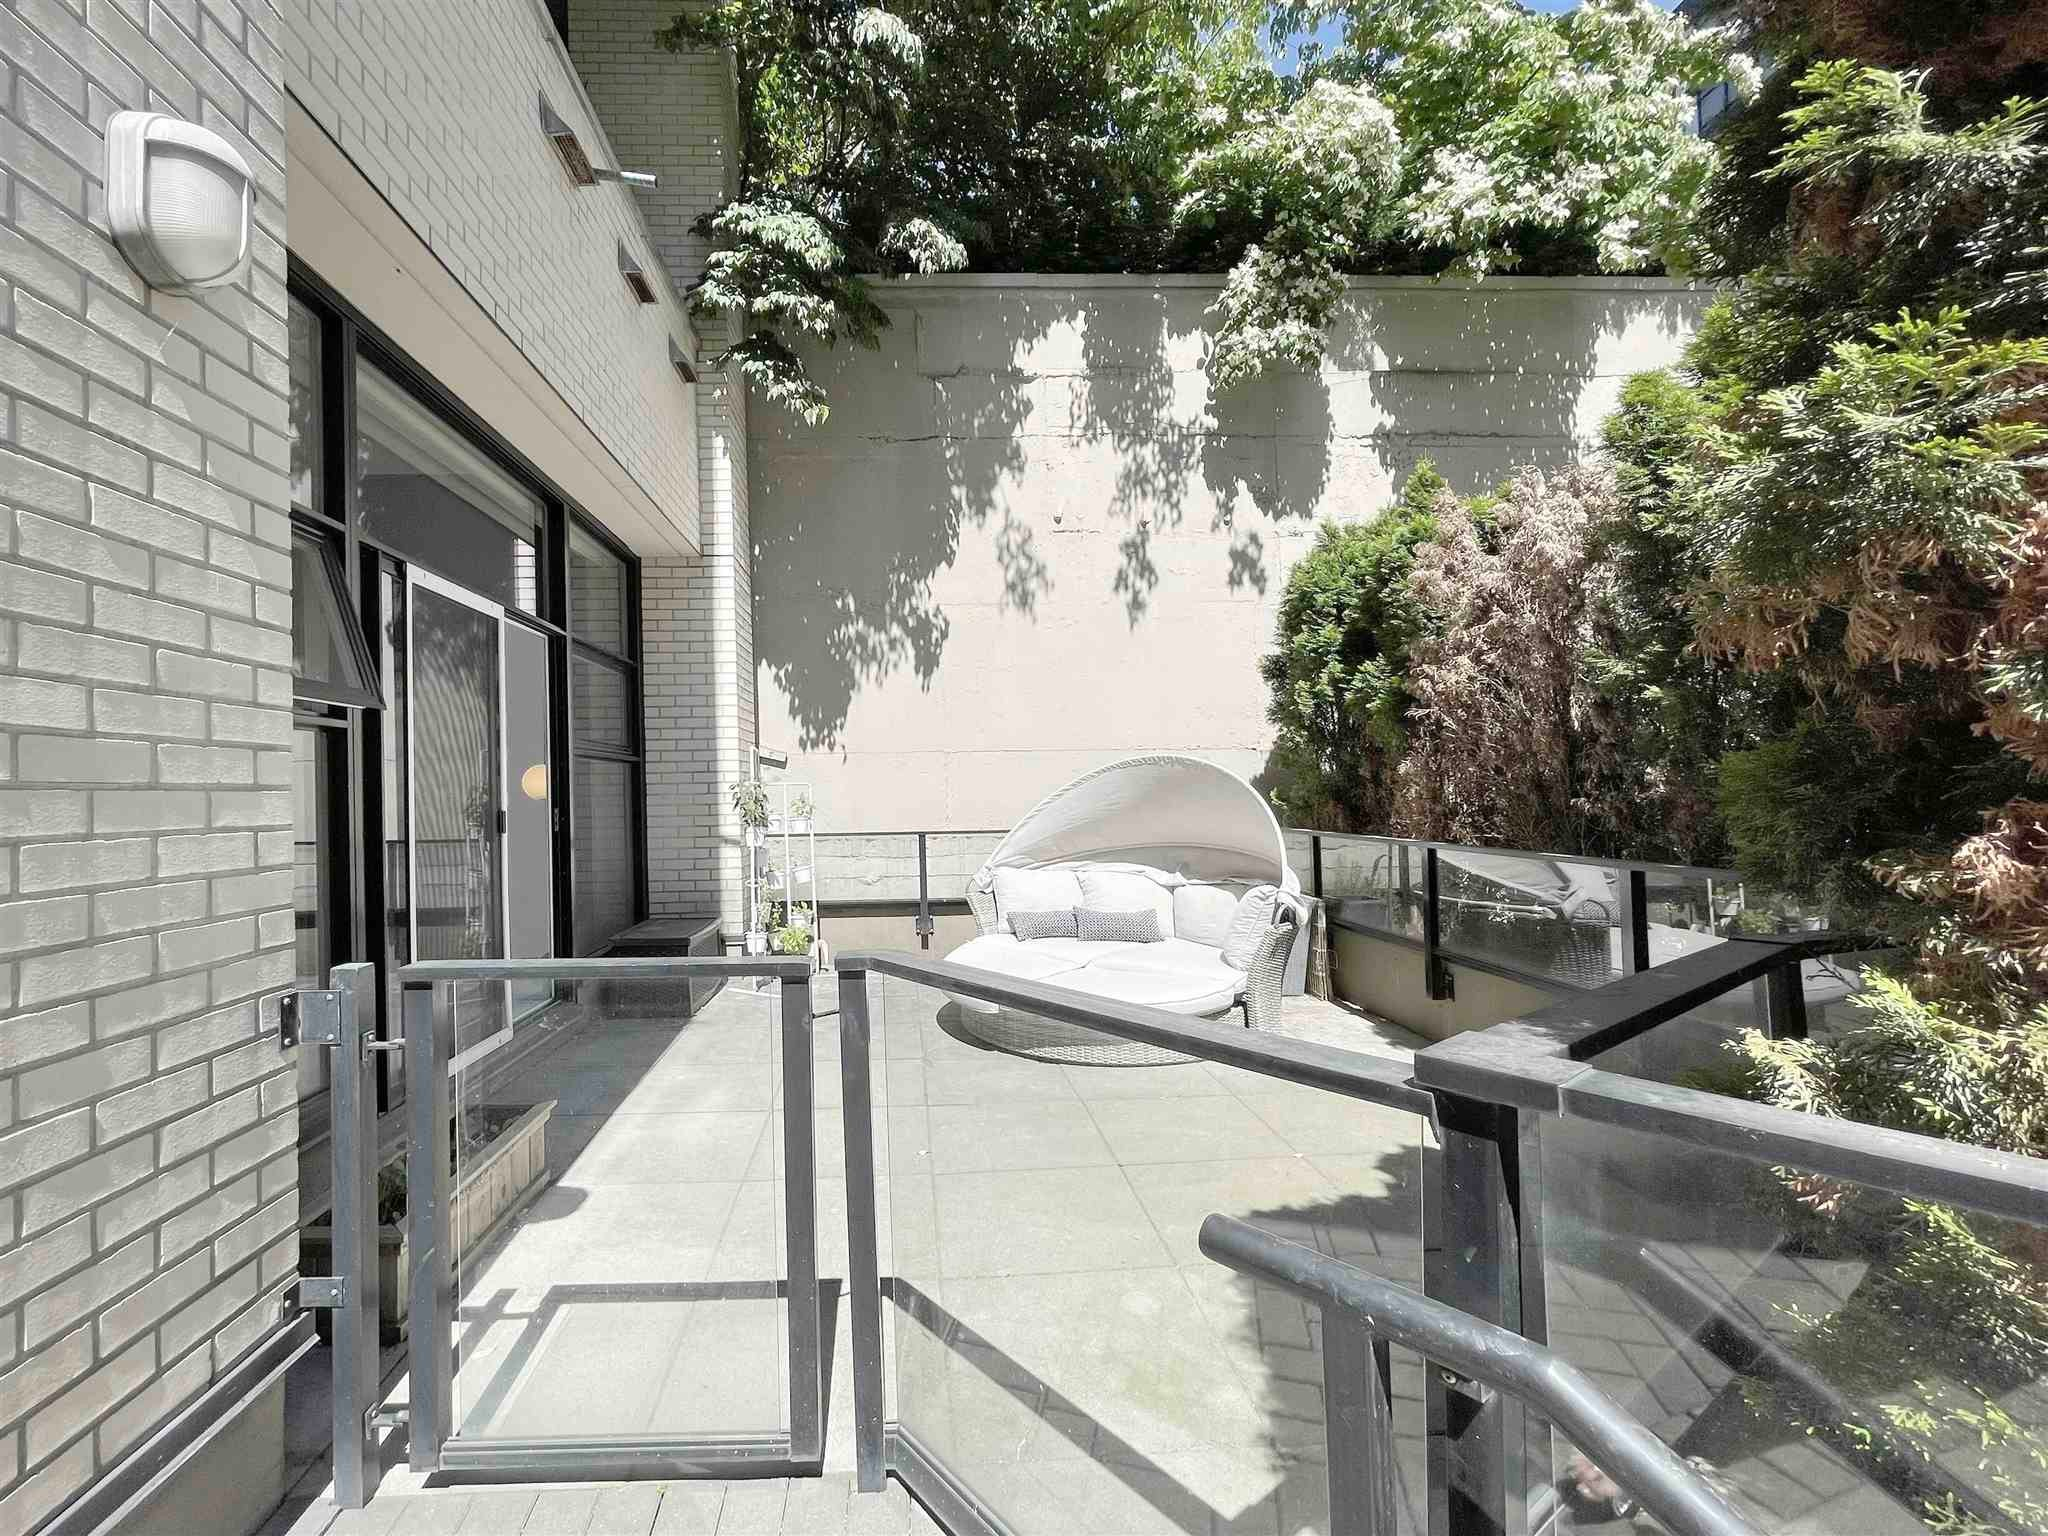 101 1252 HORNBY STREET - Downtown VW Apartment/Condo for sale, 1 Bedroom (R2604180) - #15